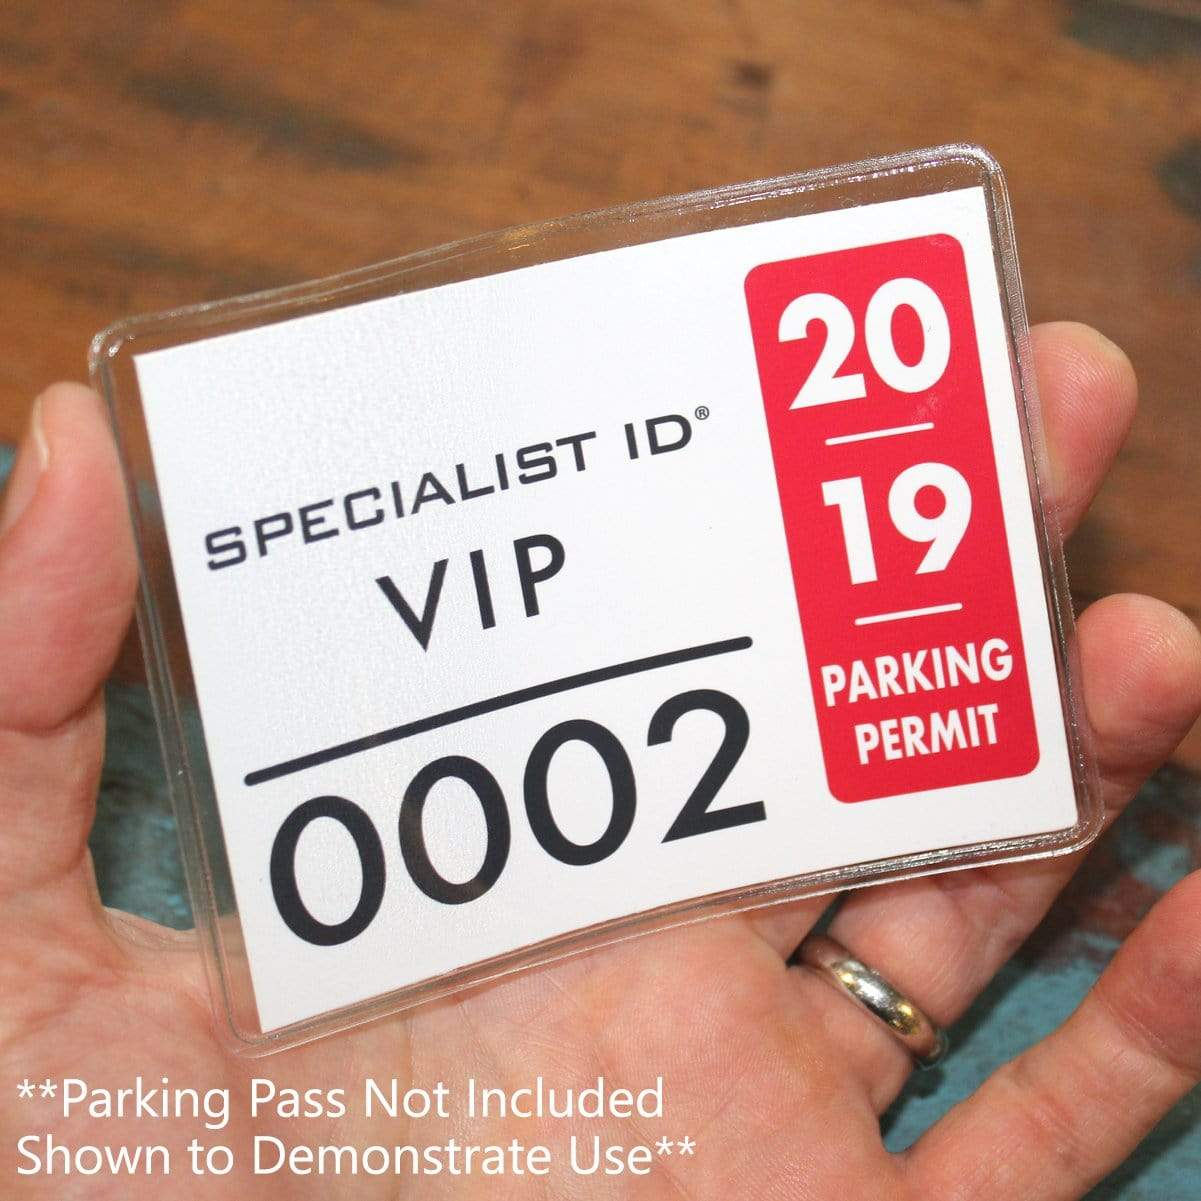 Large 4 x 3 Adhesive Badge Holders with Sticky Back - Clear Vinyl Parking Pass Holders for Windshield (CE-4P)